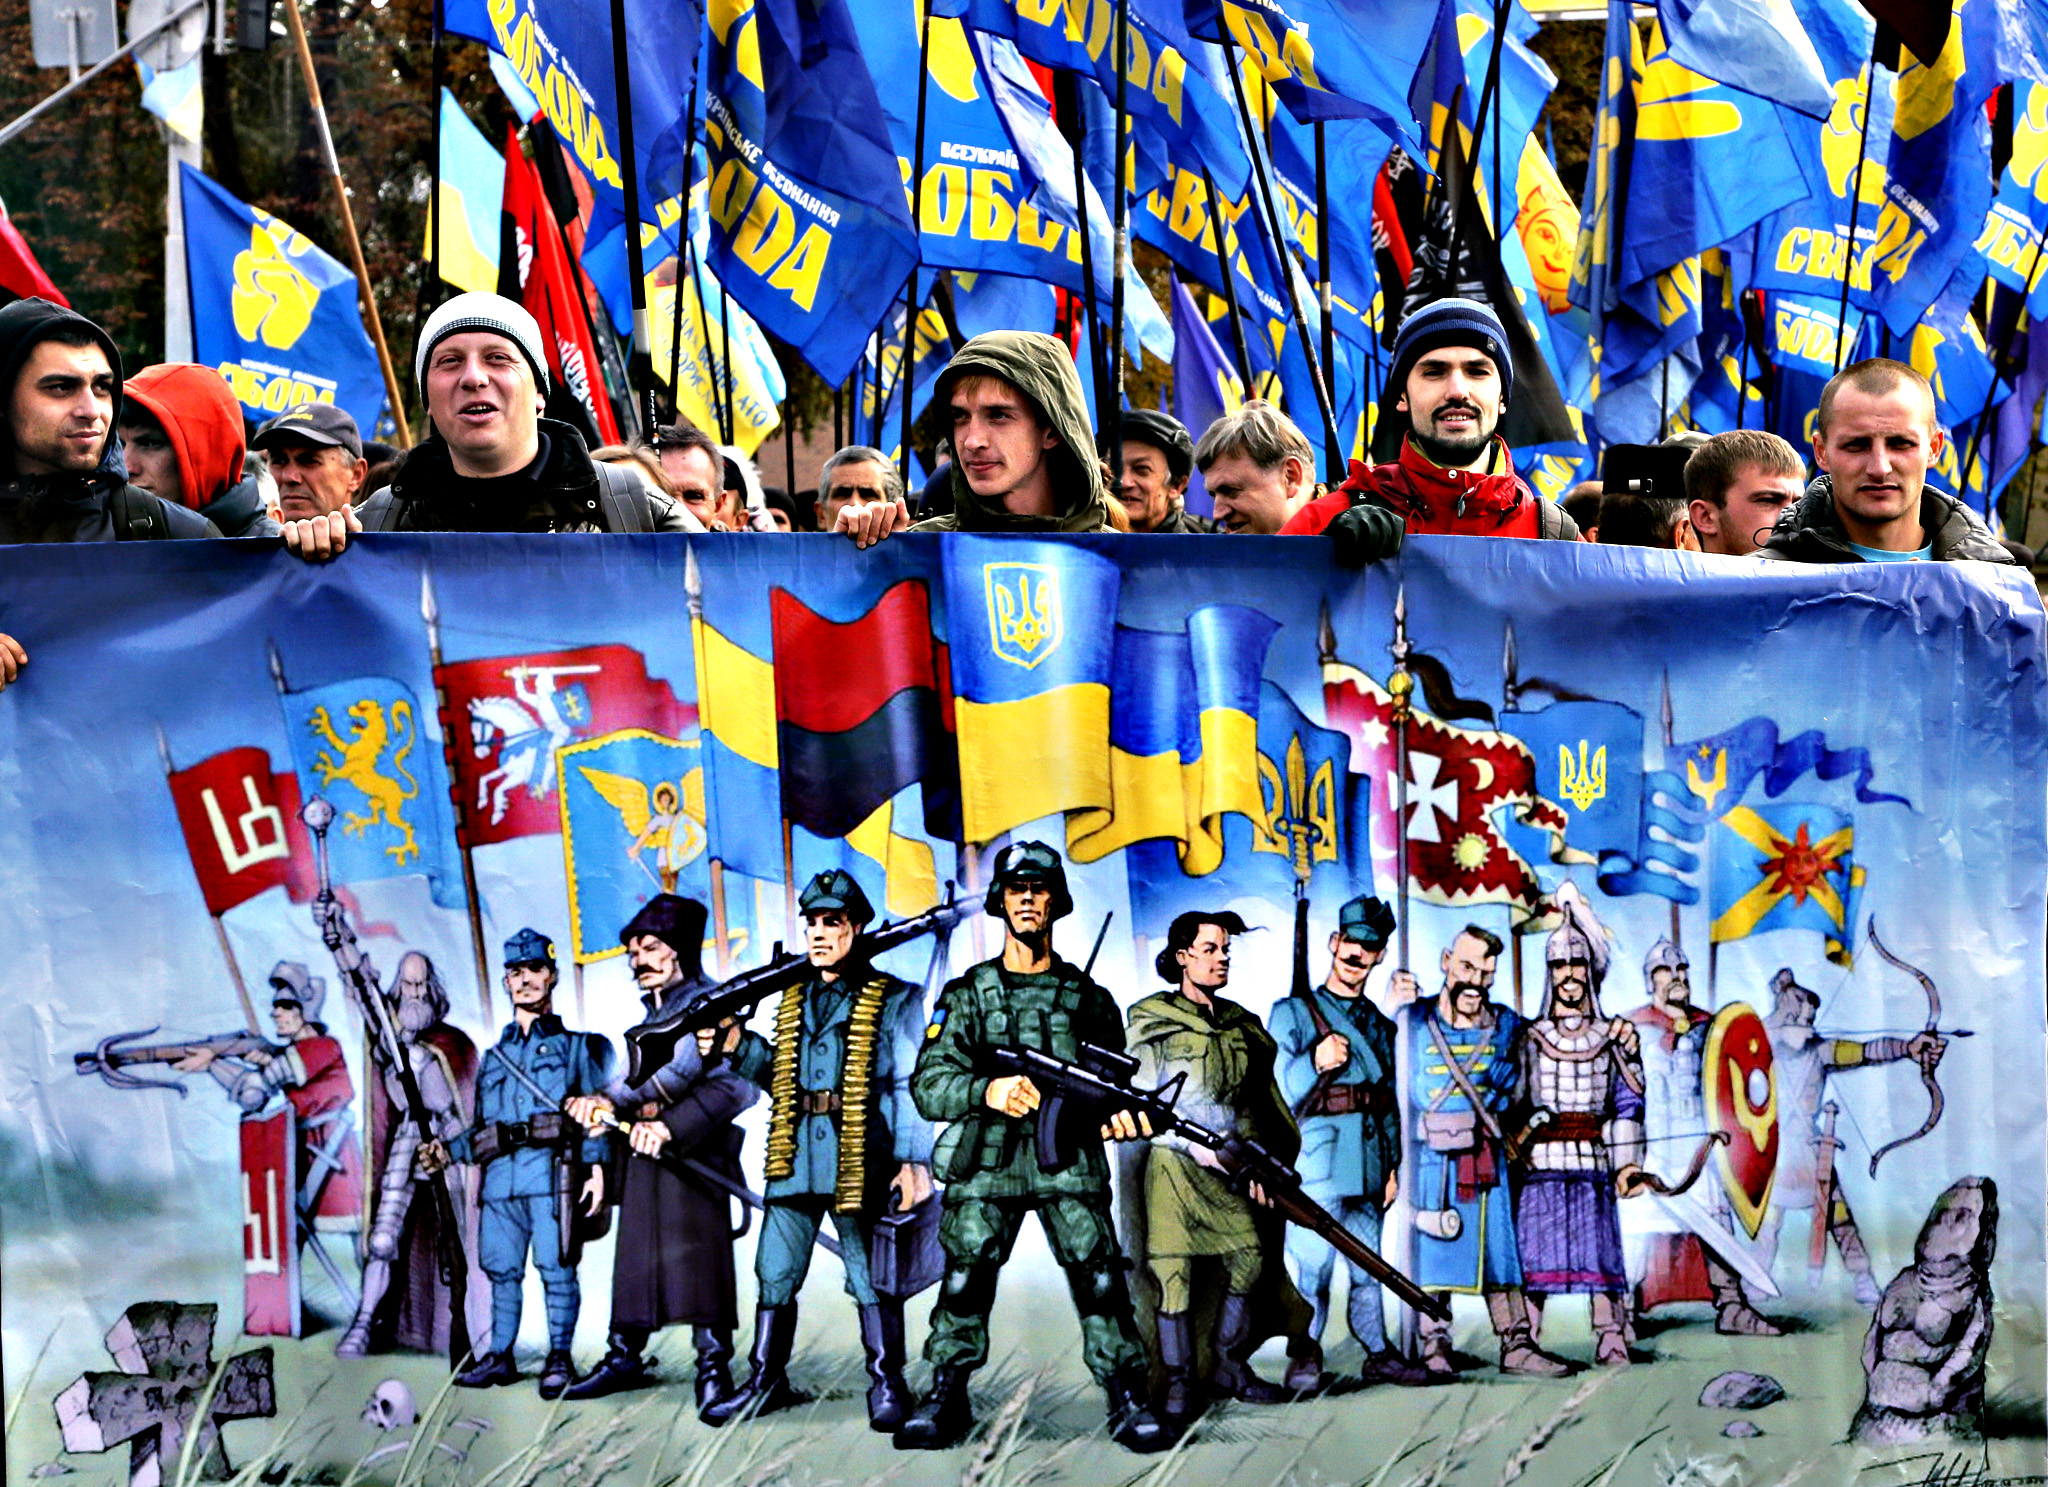 Activists of the of nationalist Svoboda (Freedom) party hold a poster and their flags during a  rally in Kiev, Ukraine, Wednesday Oct. 14, 2015. Ukraine is marking the 'Defender of the Fatherland Day'.